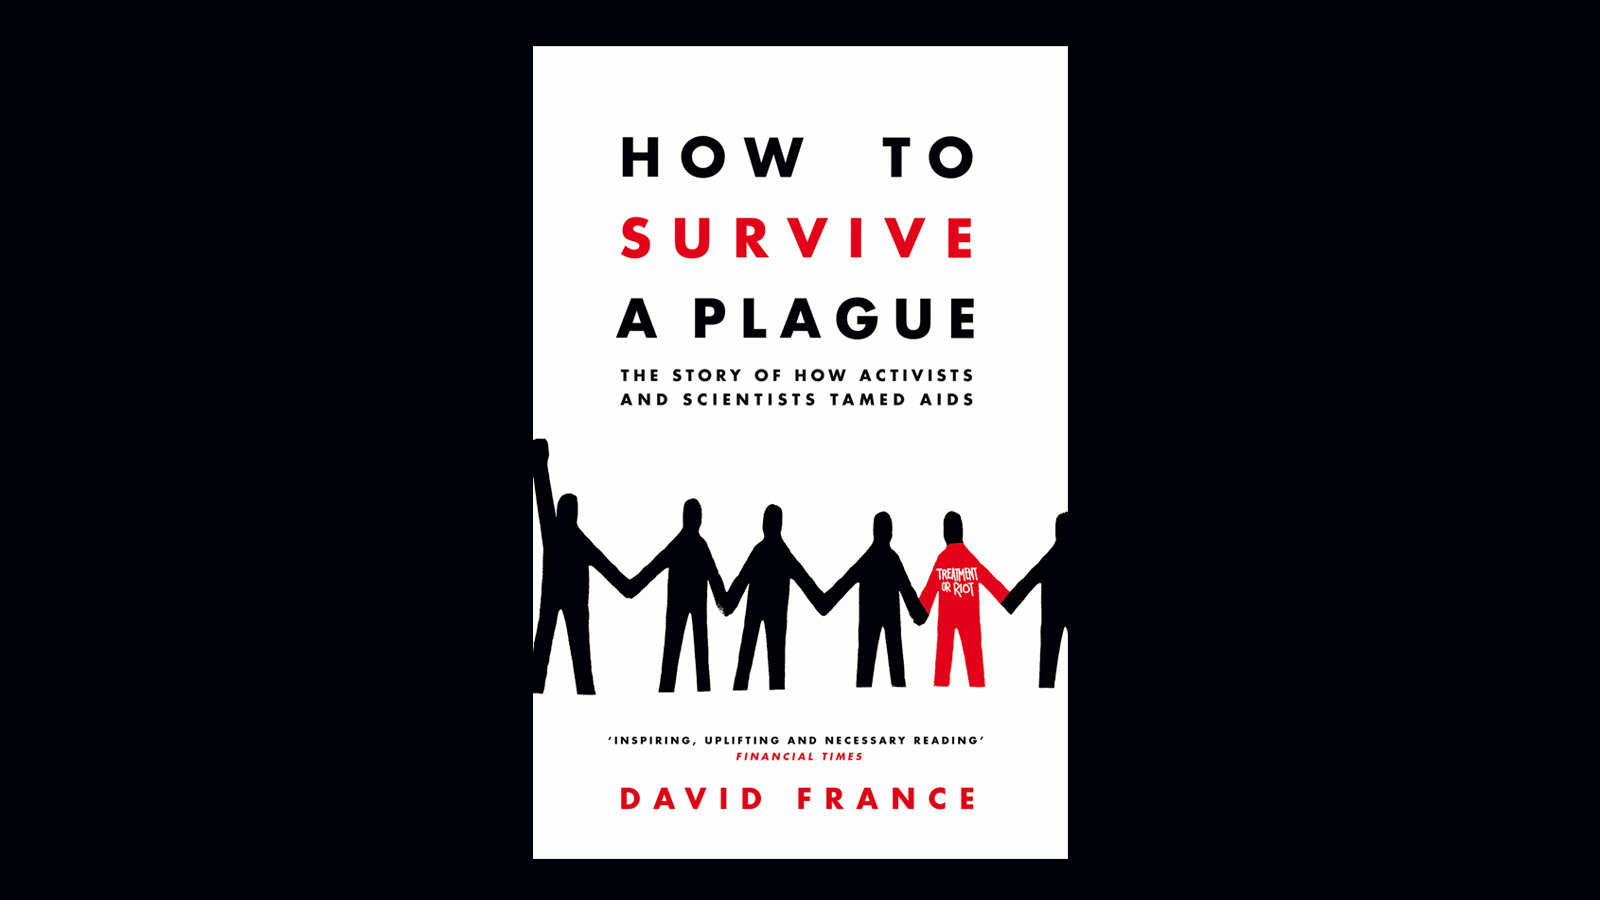 We are thrilled to share the news that David France's How To Survive a  Plague has been awarded the 2017 Baillie Gifford prize for non-fiction.